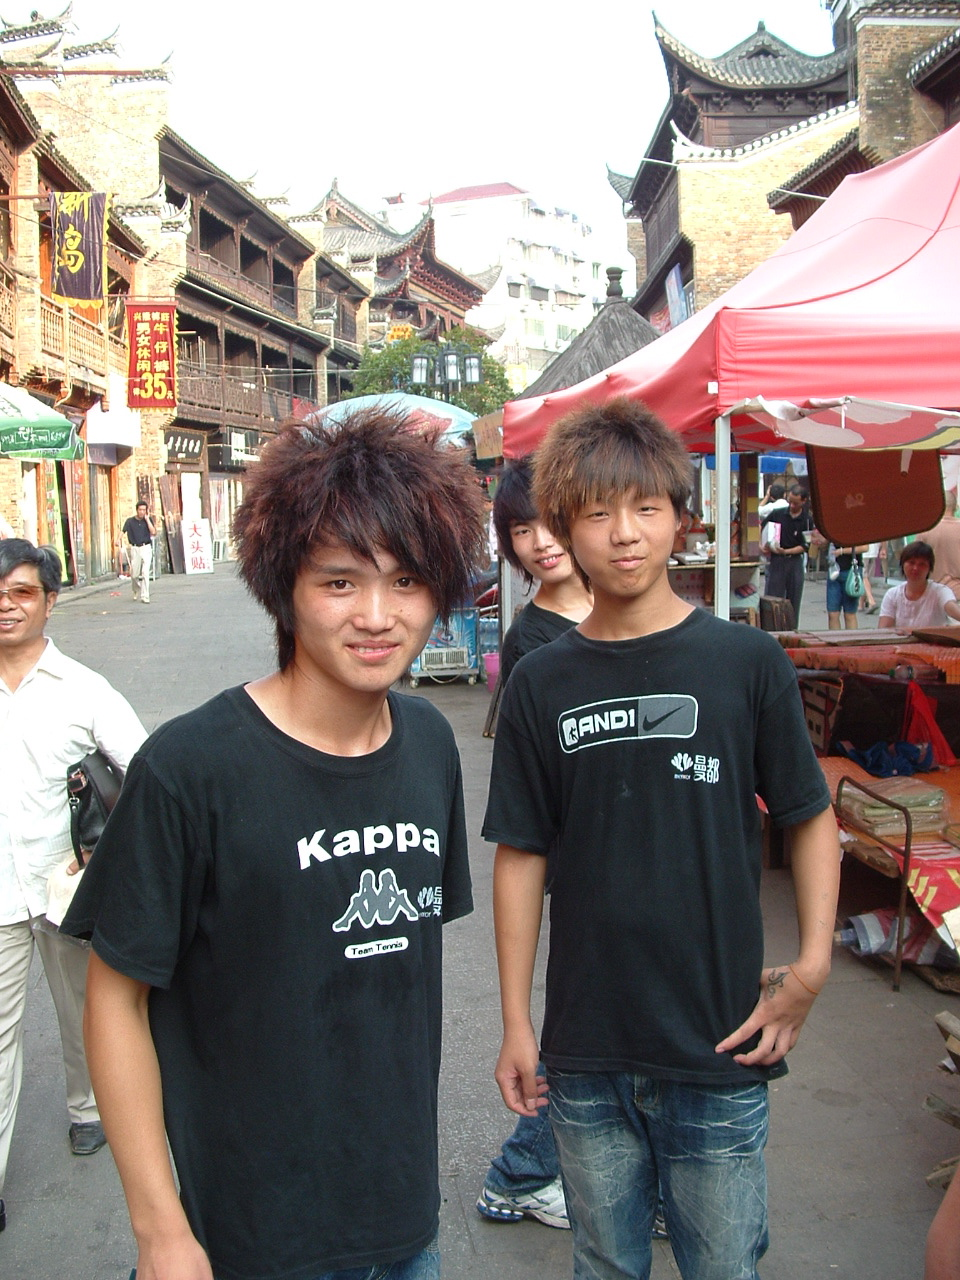 Teenagers hawking haircuts